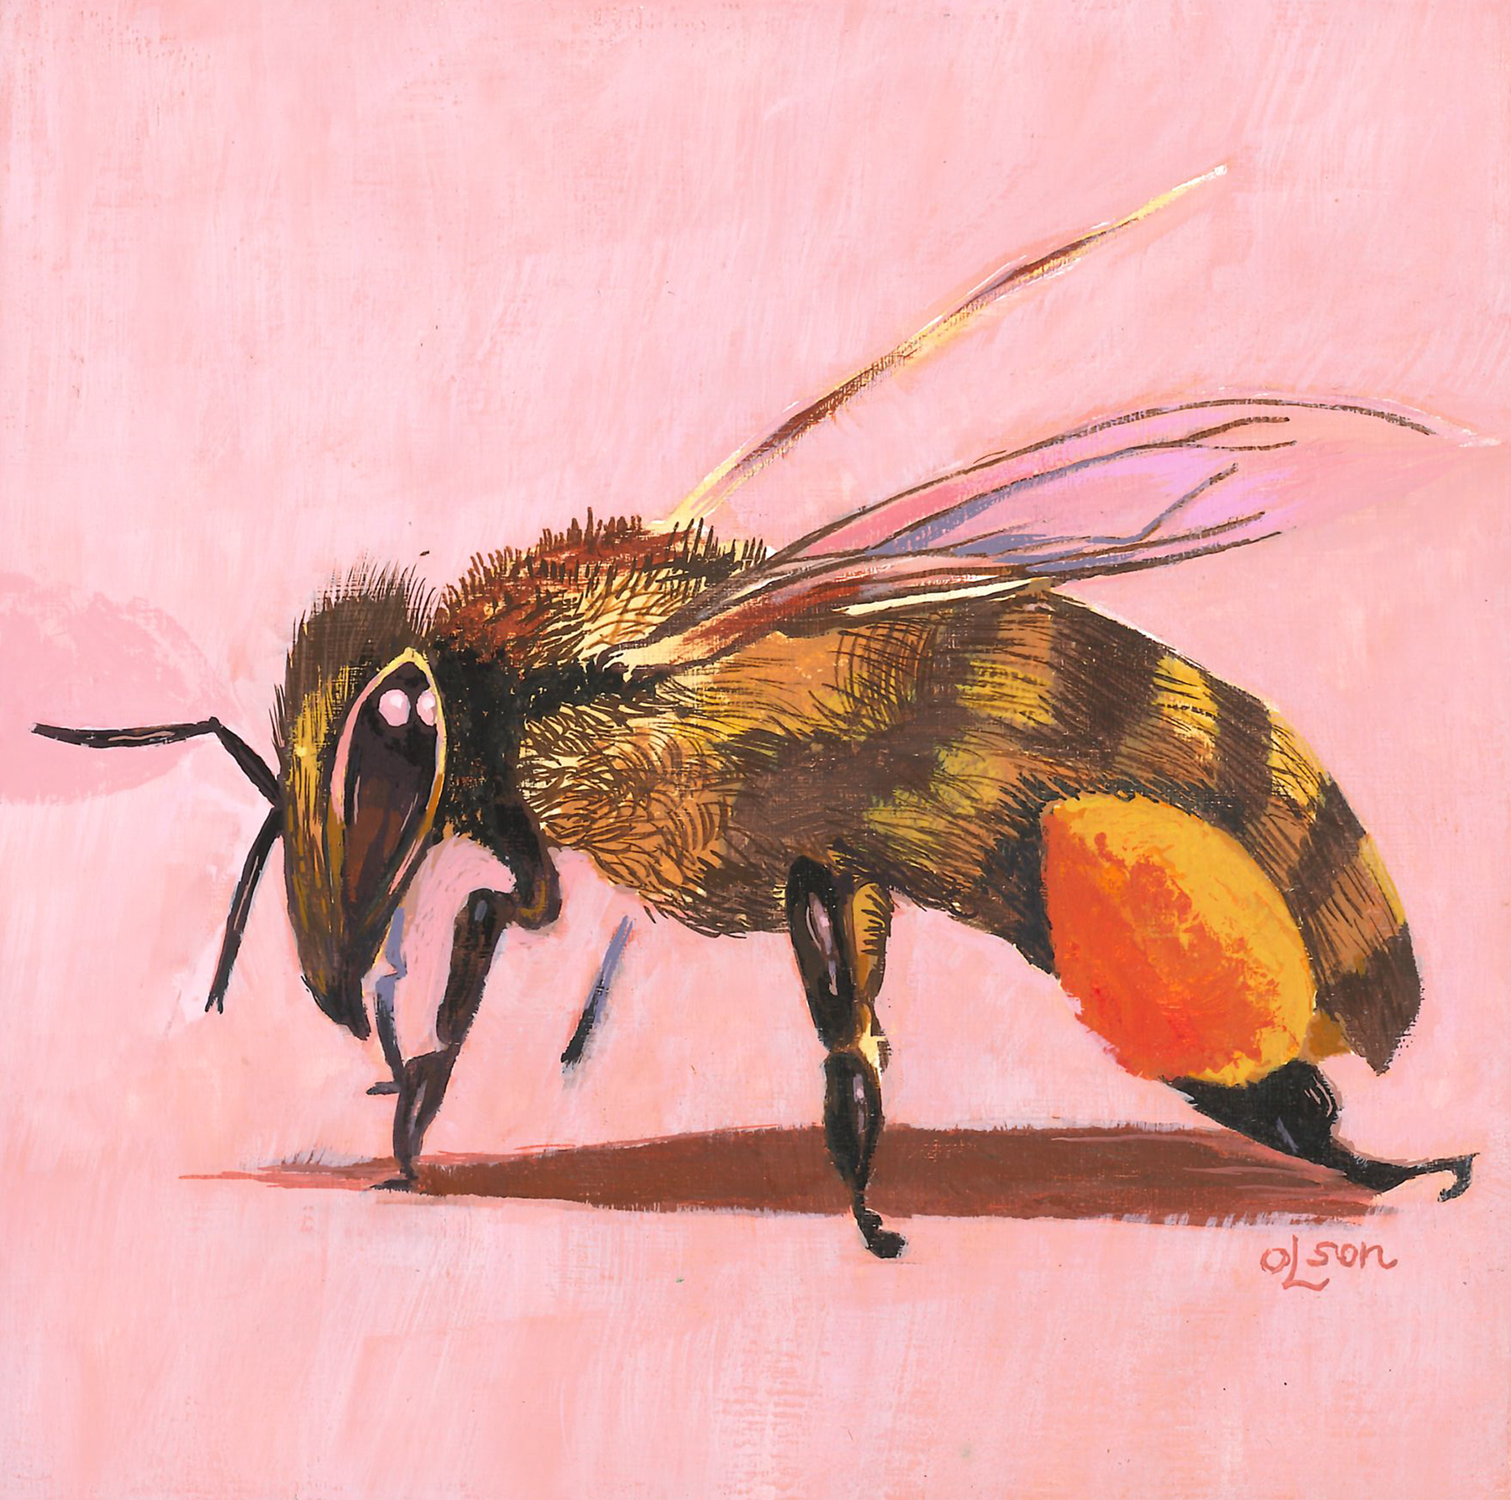 christopherolson_honey bee.jpg